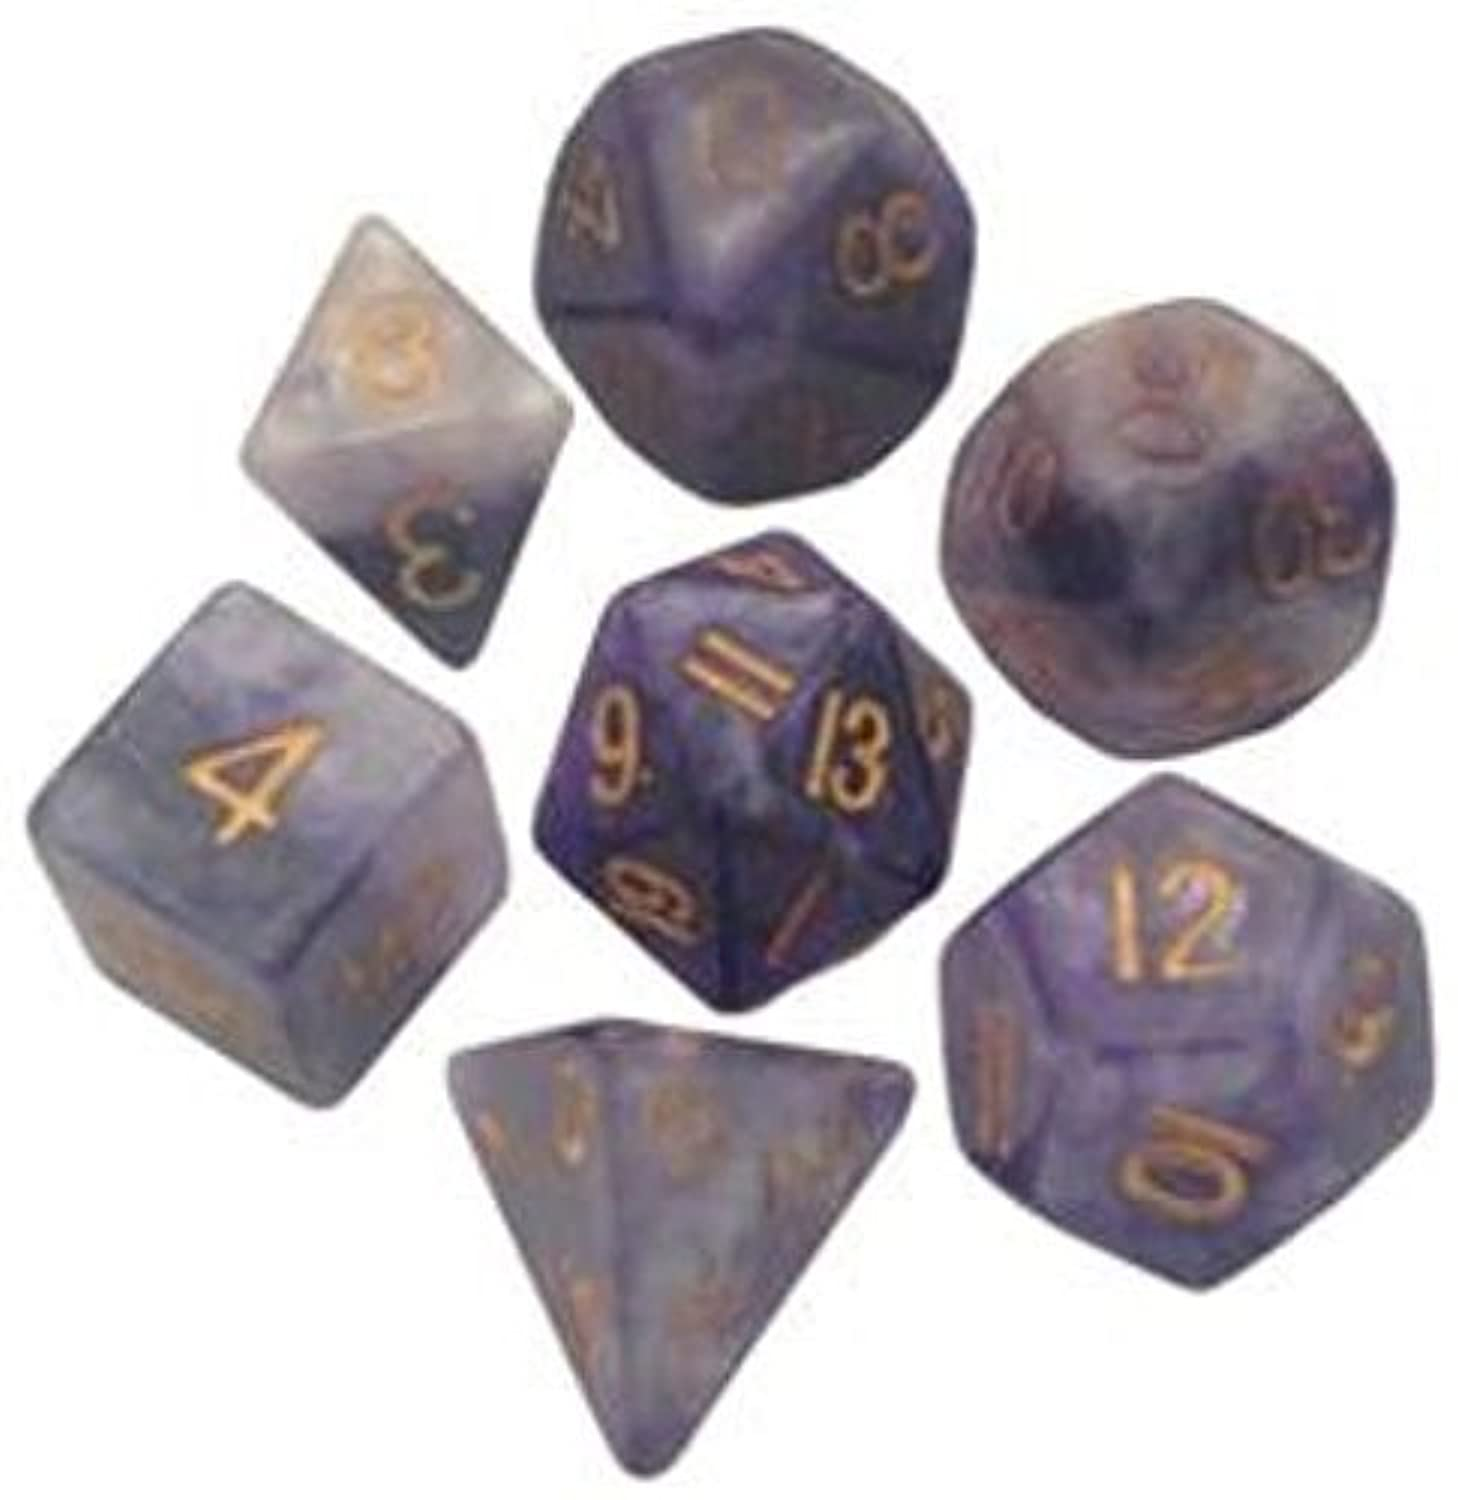 Polyhedral 7 Die Set Resin Dice: Combo Attack Blue/White with Gold Numbers by Metallic Dice Games